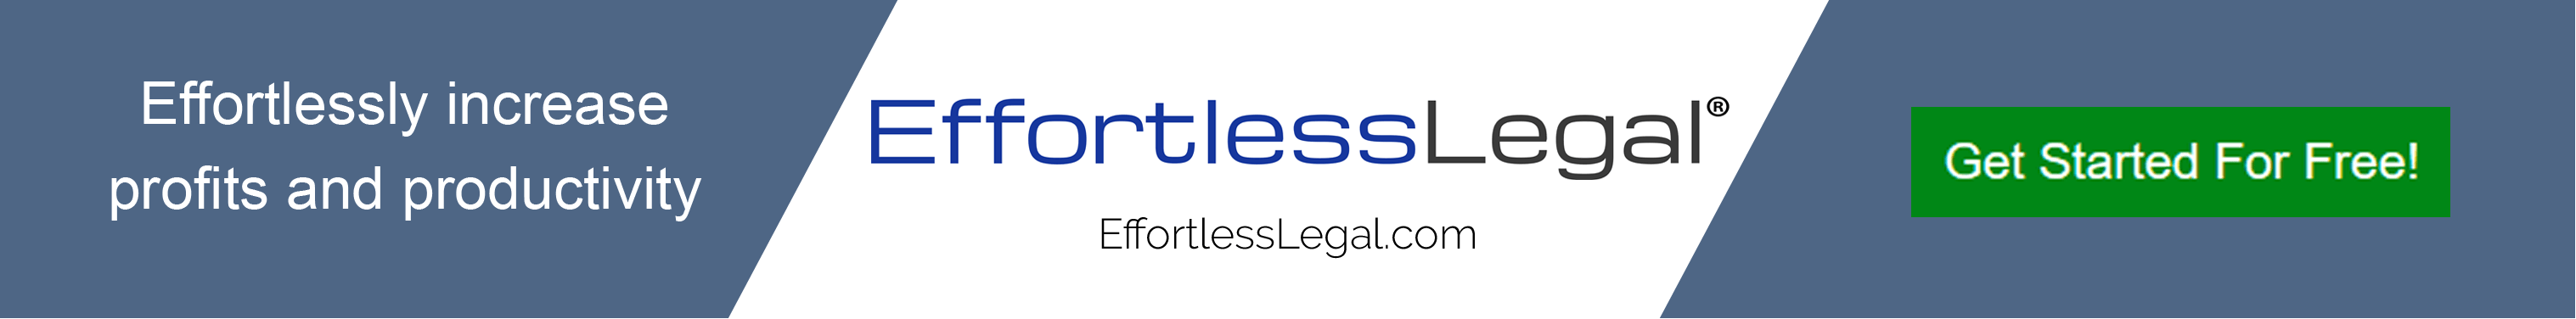 Data Driven Solutions for Law Firm Profitability